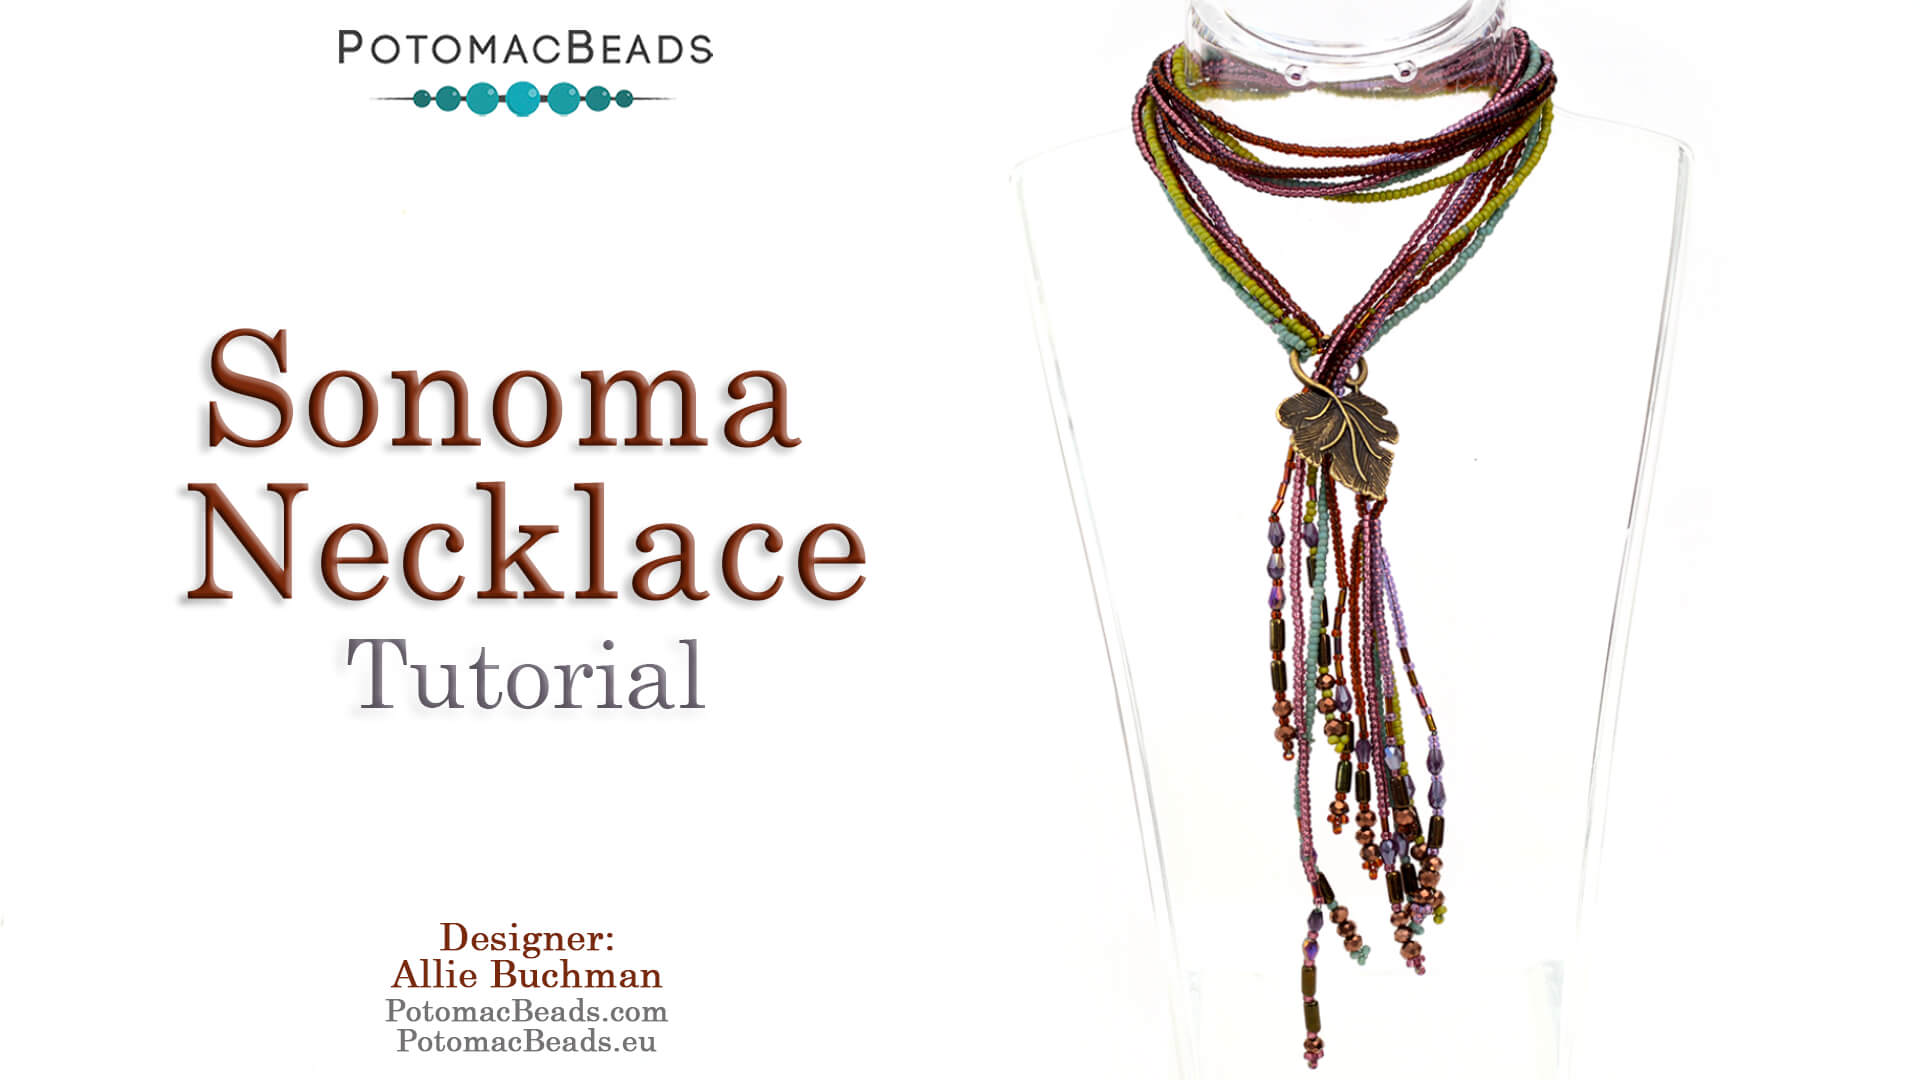 How to Bead Jewelry / Videos Sorted by Beads / Tubelet Bead Videos / Sonoma Necklace Tutorial